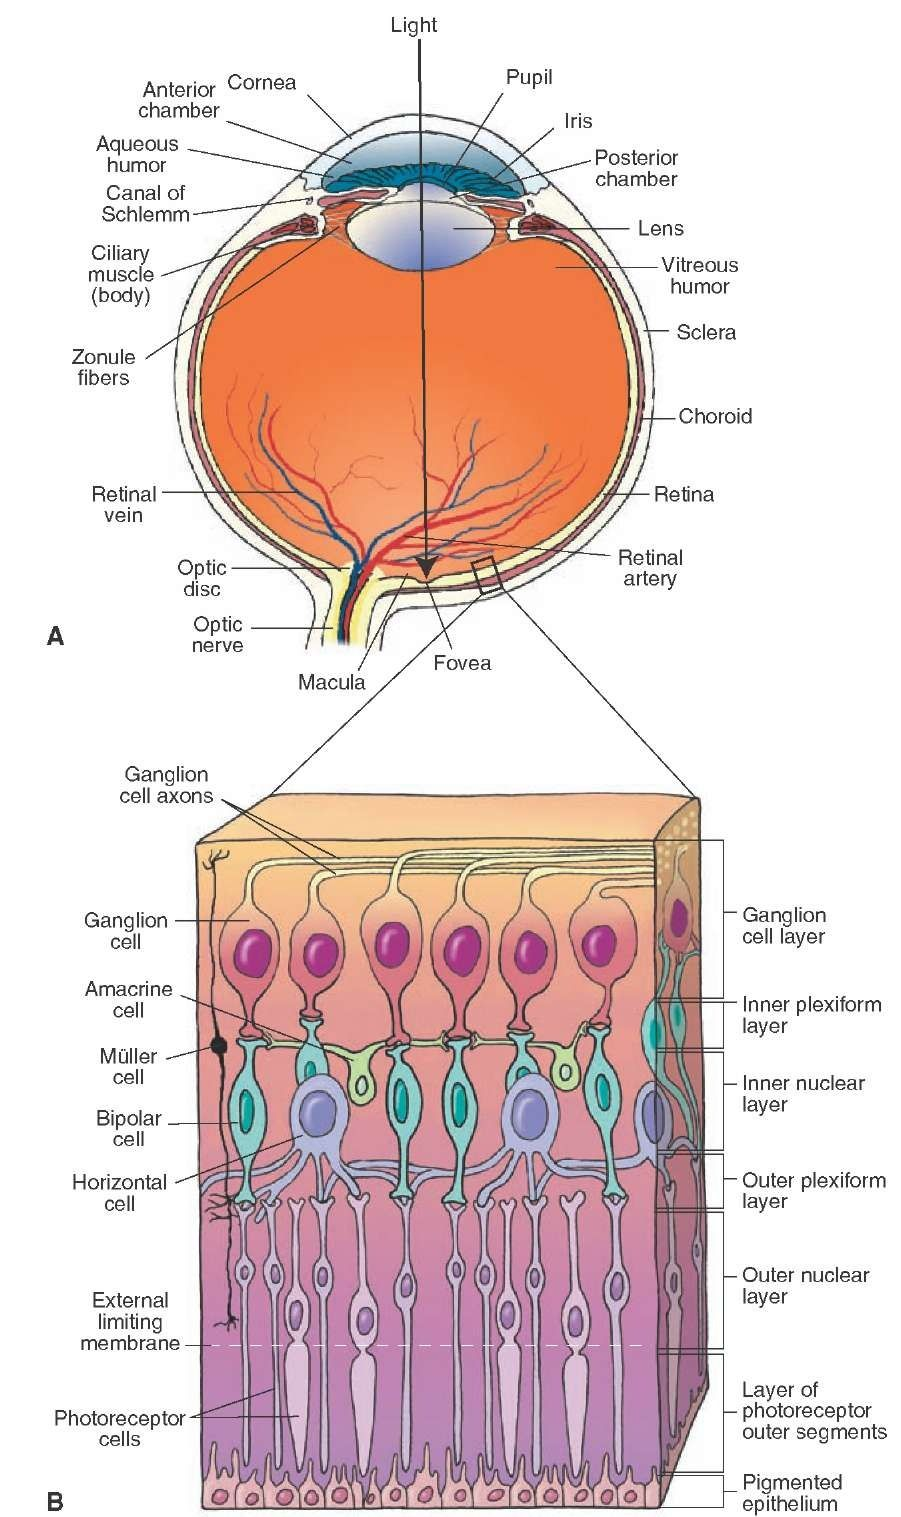 structure of the eye and retina a different components of the eye plant cell diagram eye cell diagram [ 901 x 1517 Pixel ]